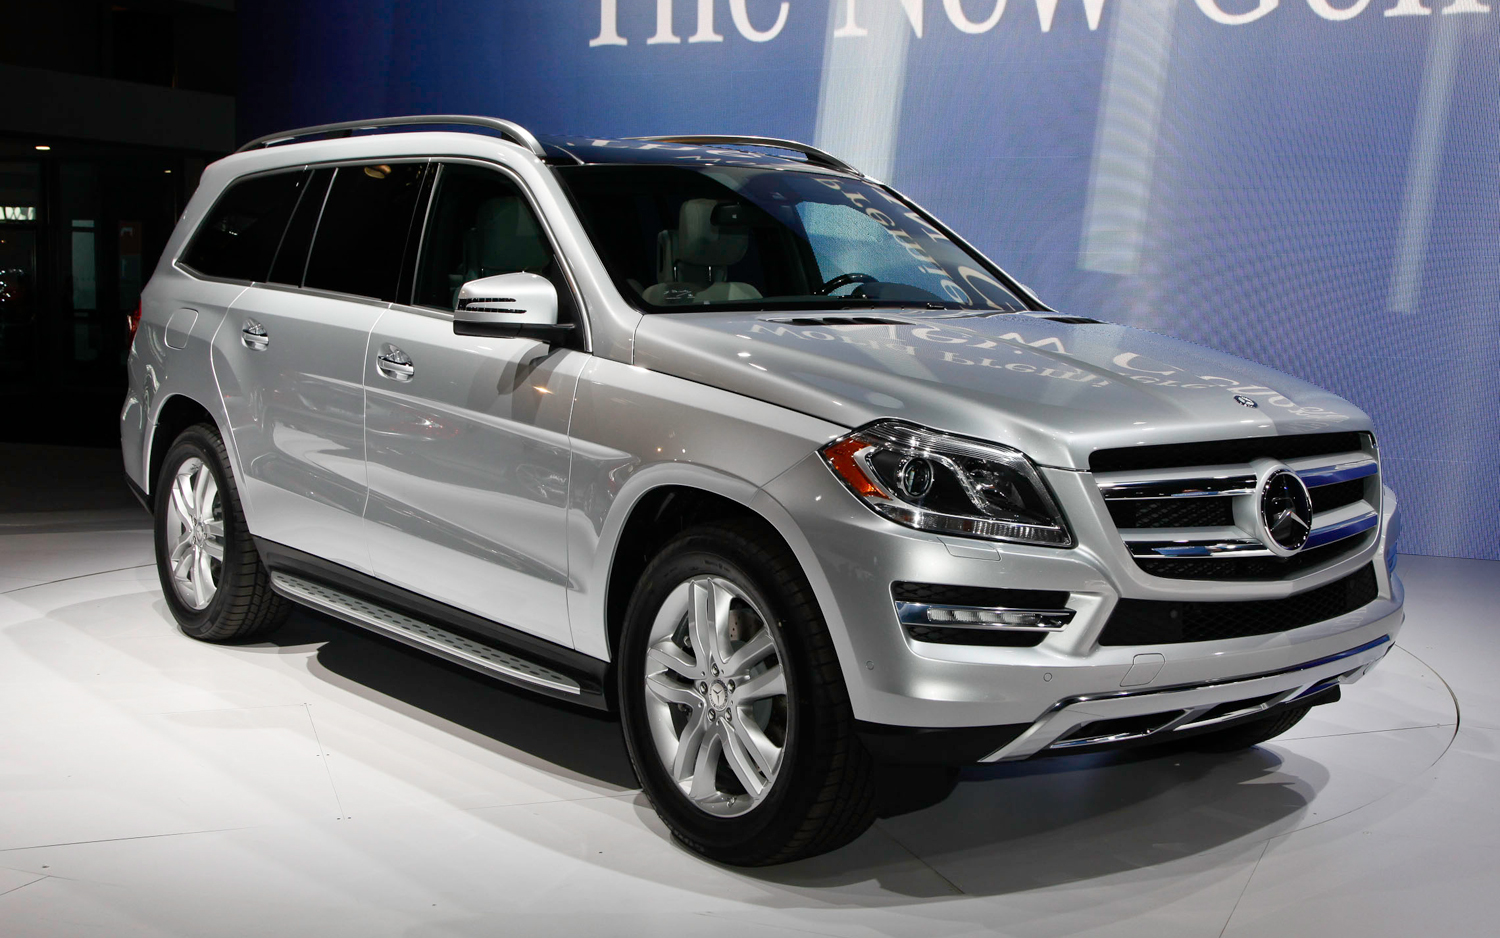 2014 mercedes benz gl class image 13 for 2014 mercedes benz gl450